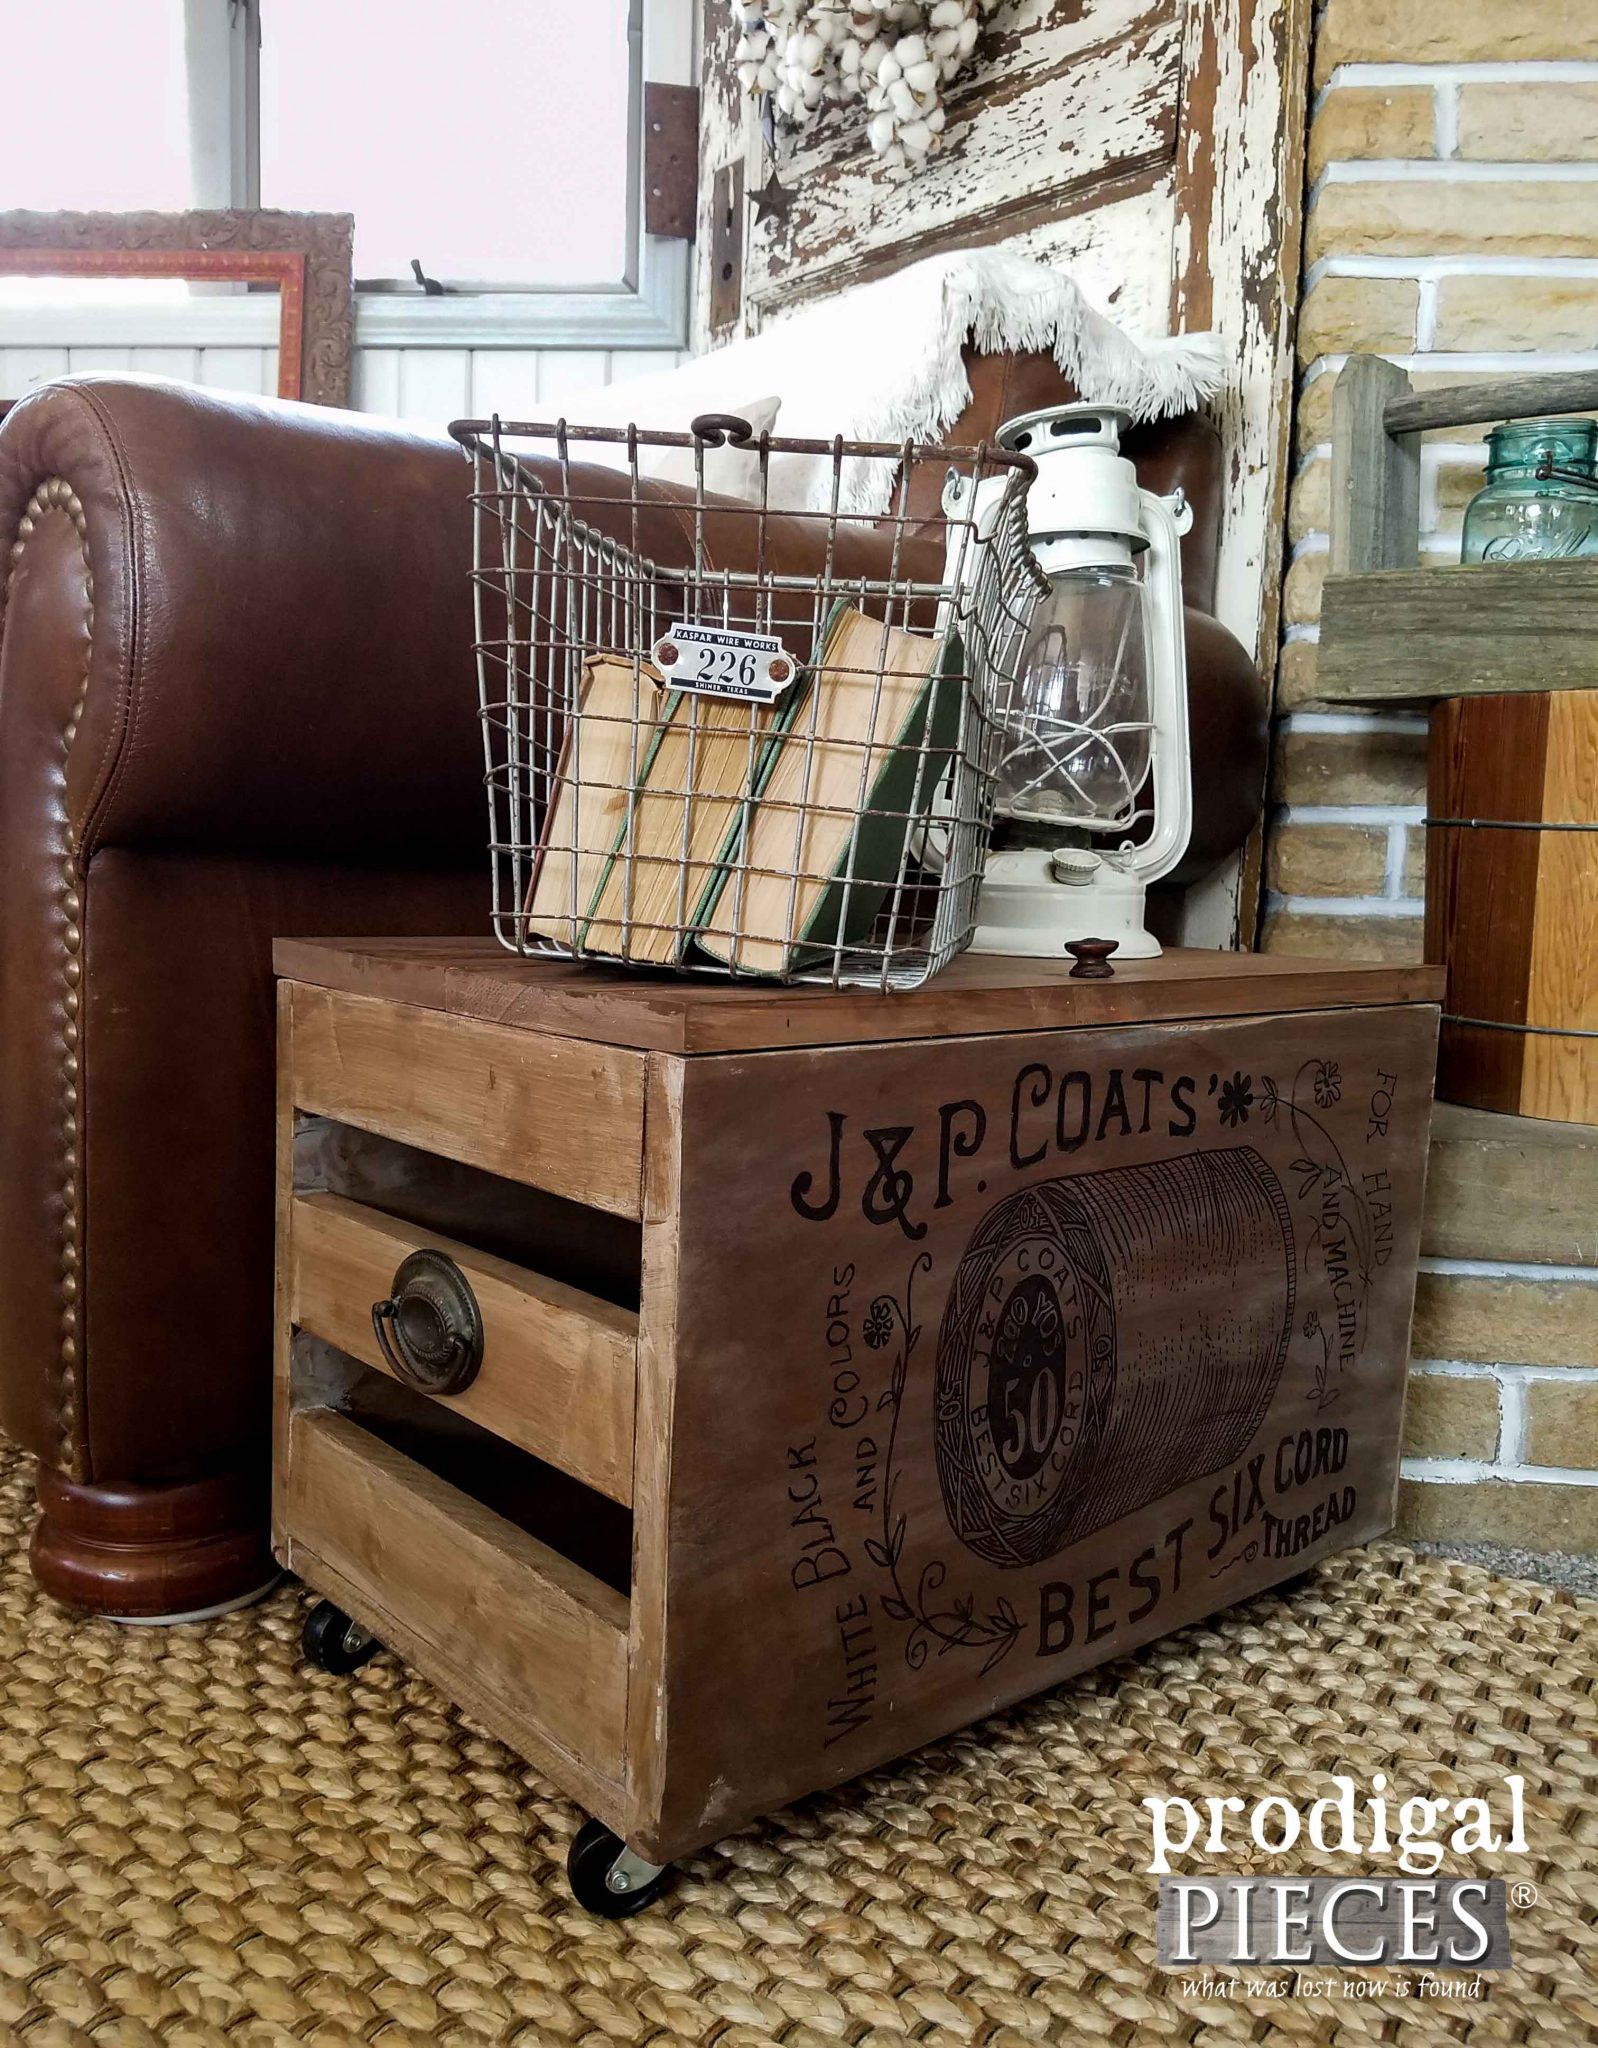 Industrial Stlyle Crate Made from Reclaimed Cabinet Doors by Prodigal Pieces | prodigalpieces.com